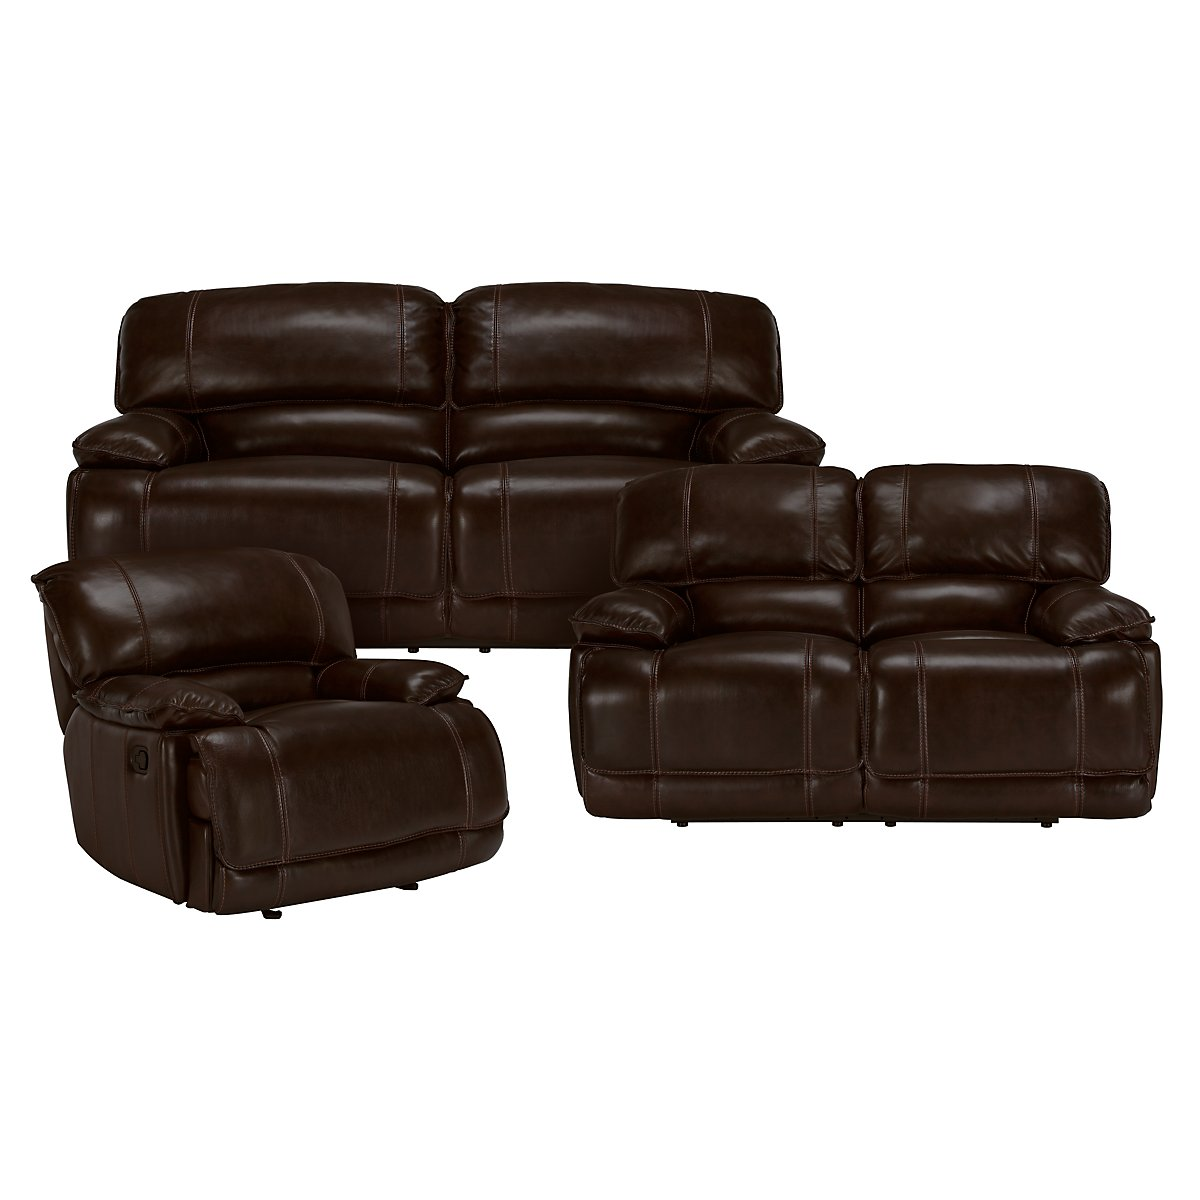 Benson Dk Brown Leather & Vinyl Power Reclining Living Room